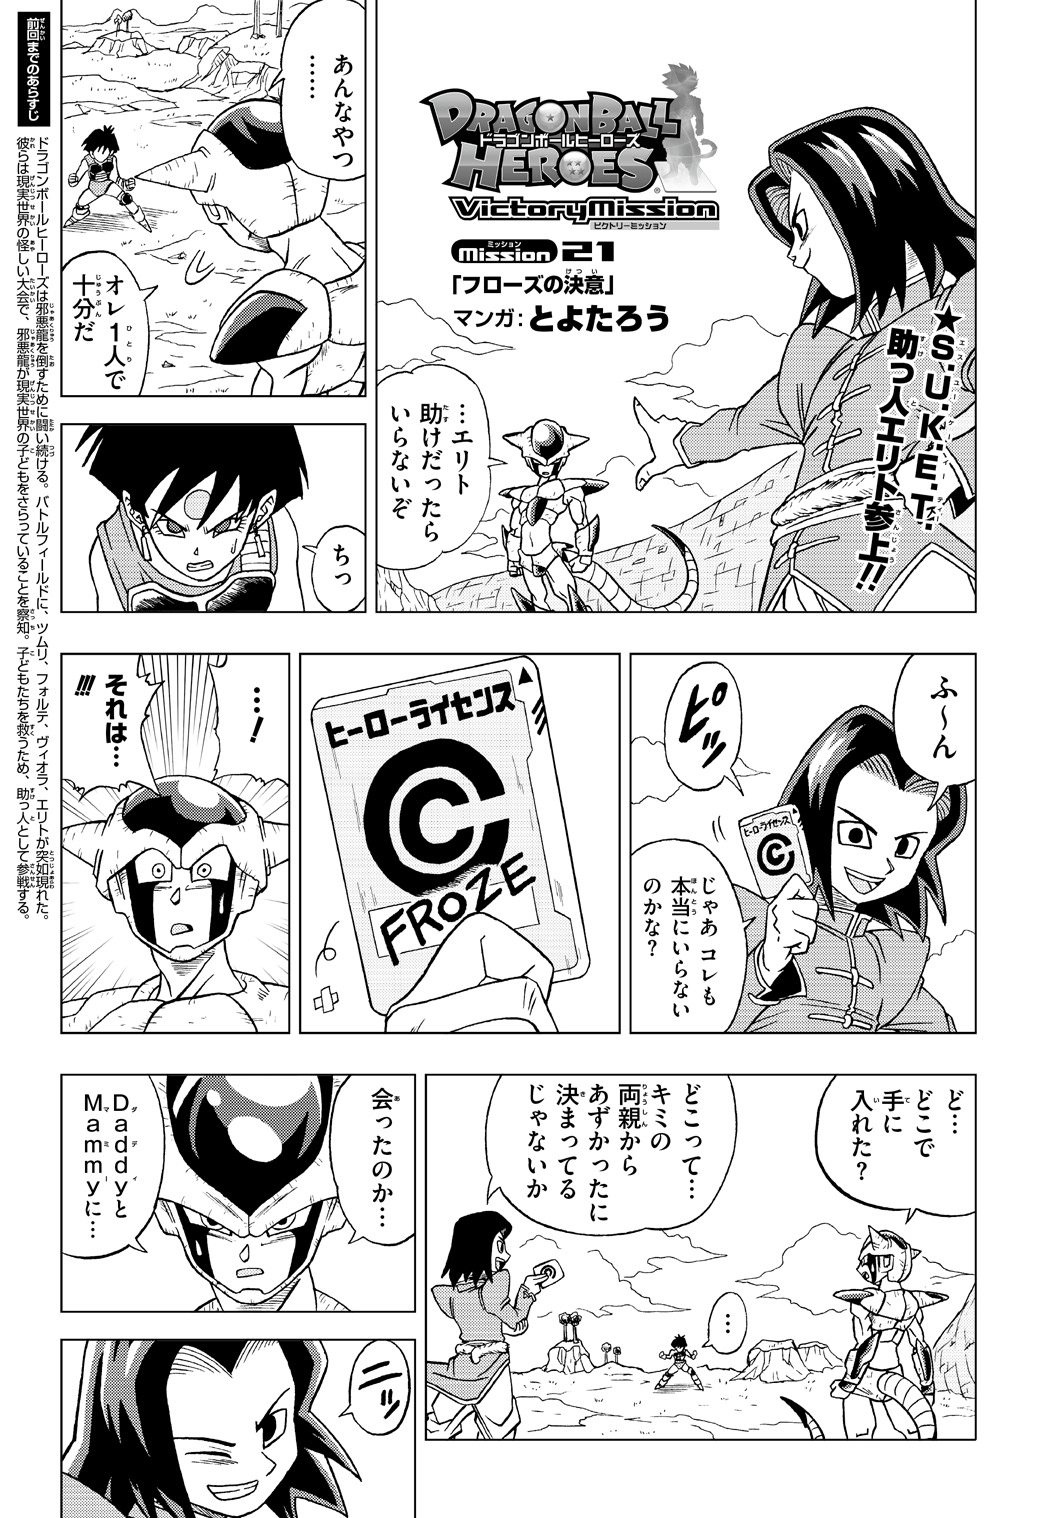 Dragon Ball Heroes Victory Mission Chapitre 021